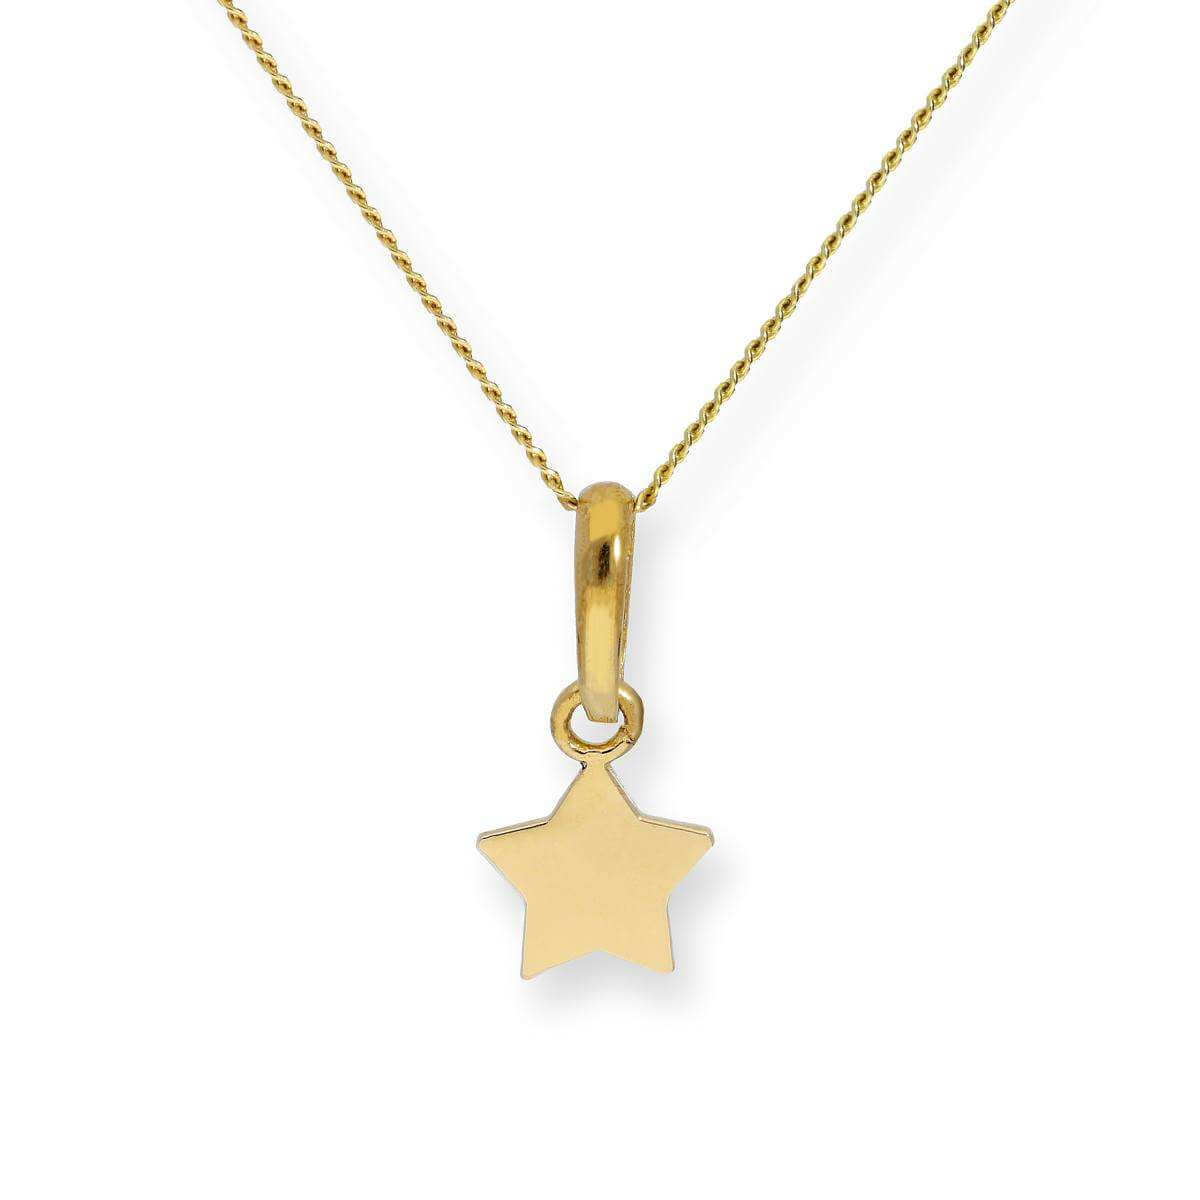 9ct Gold Star Pendant Necklace